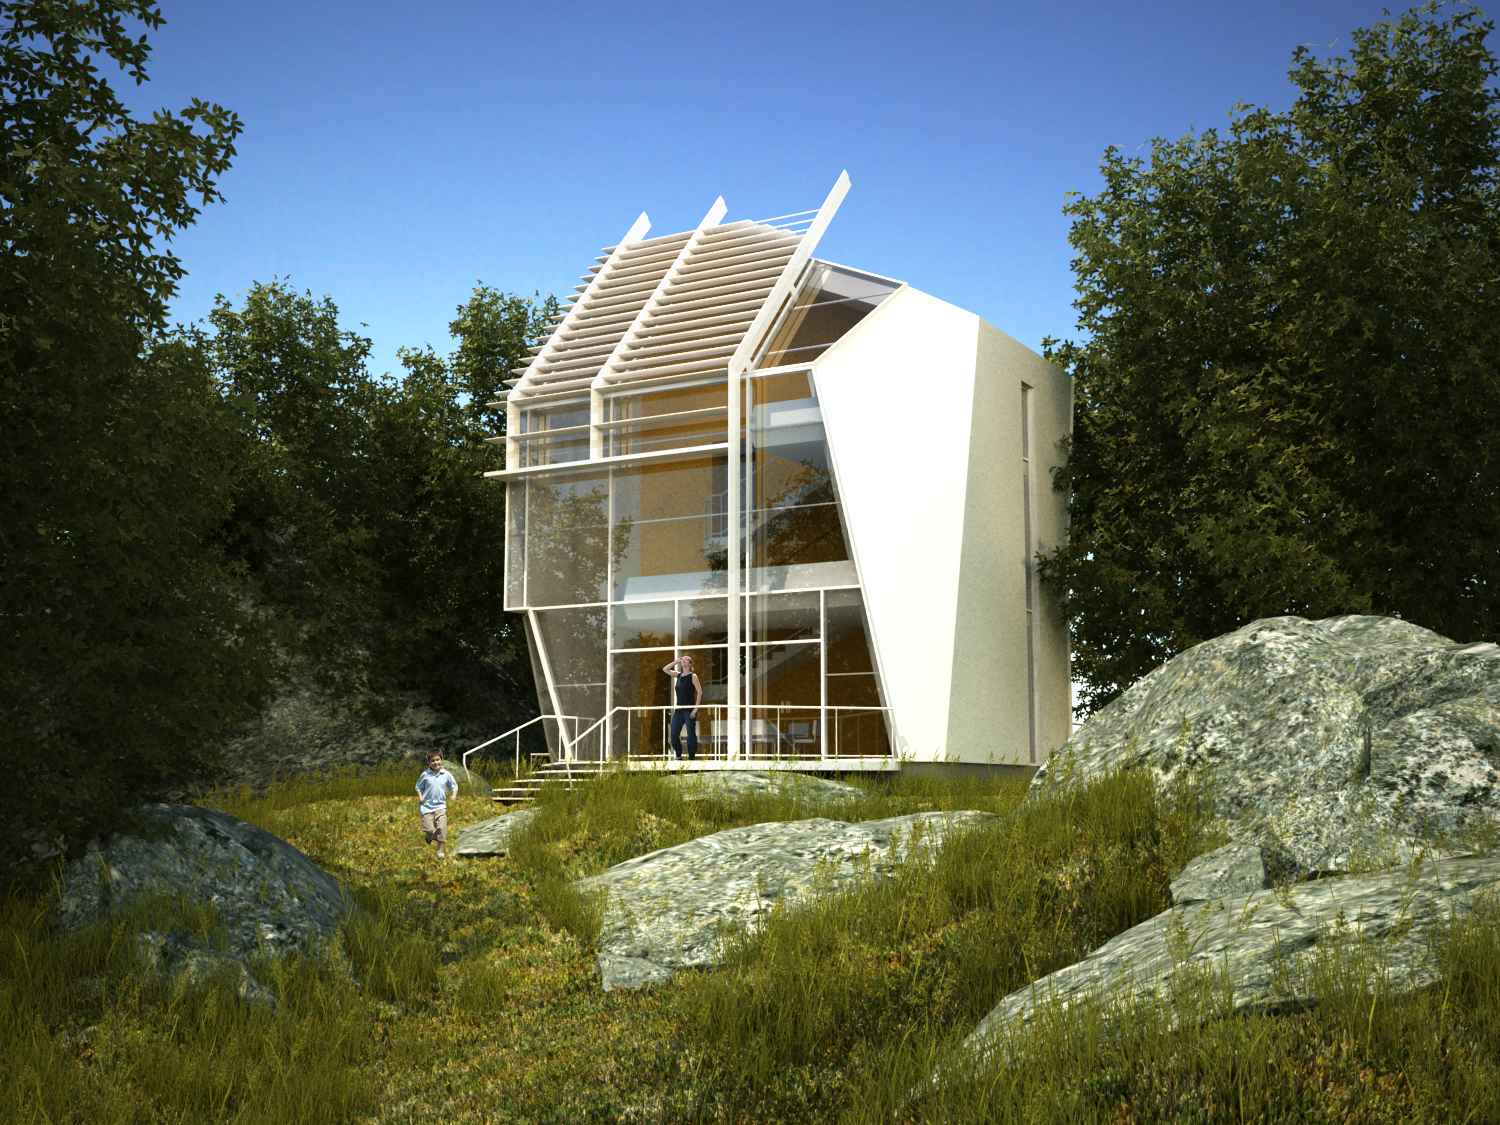 Eco House New Visual on architectural design building